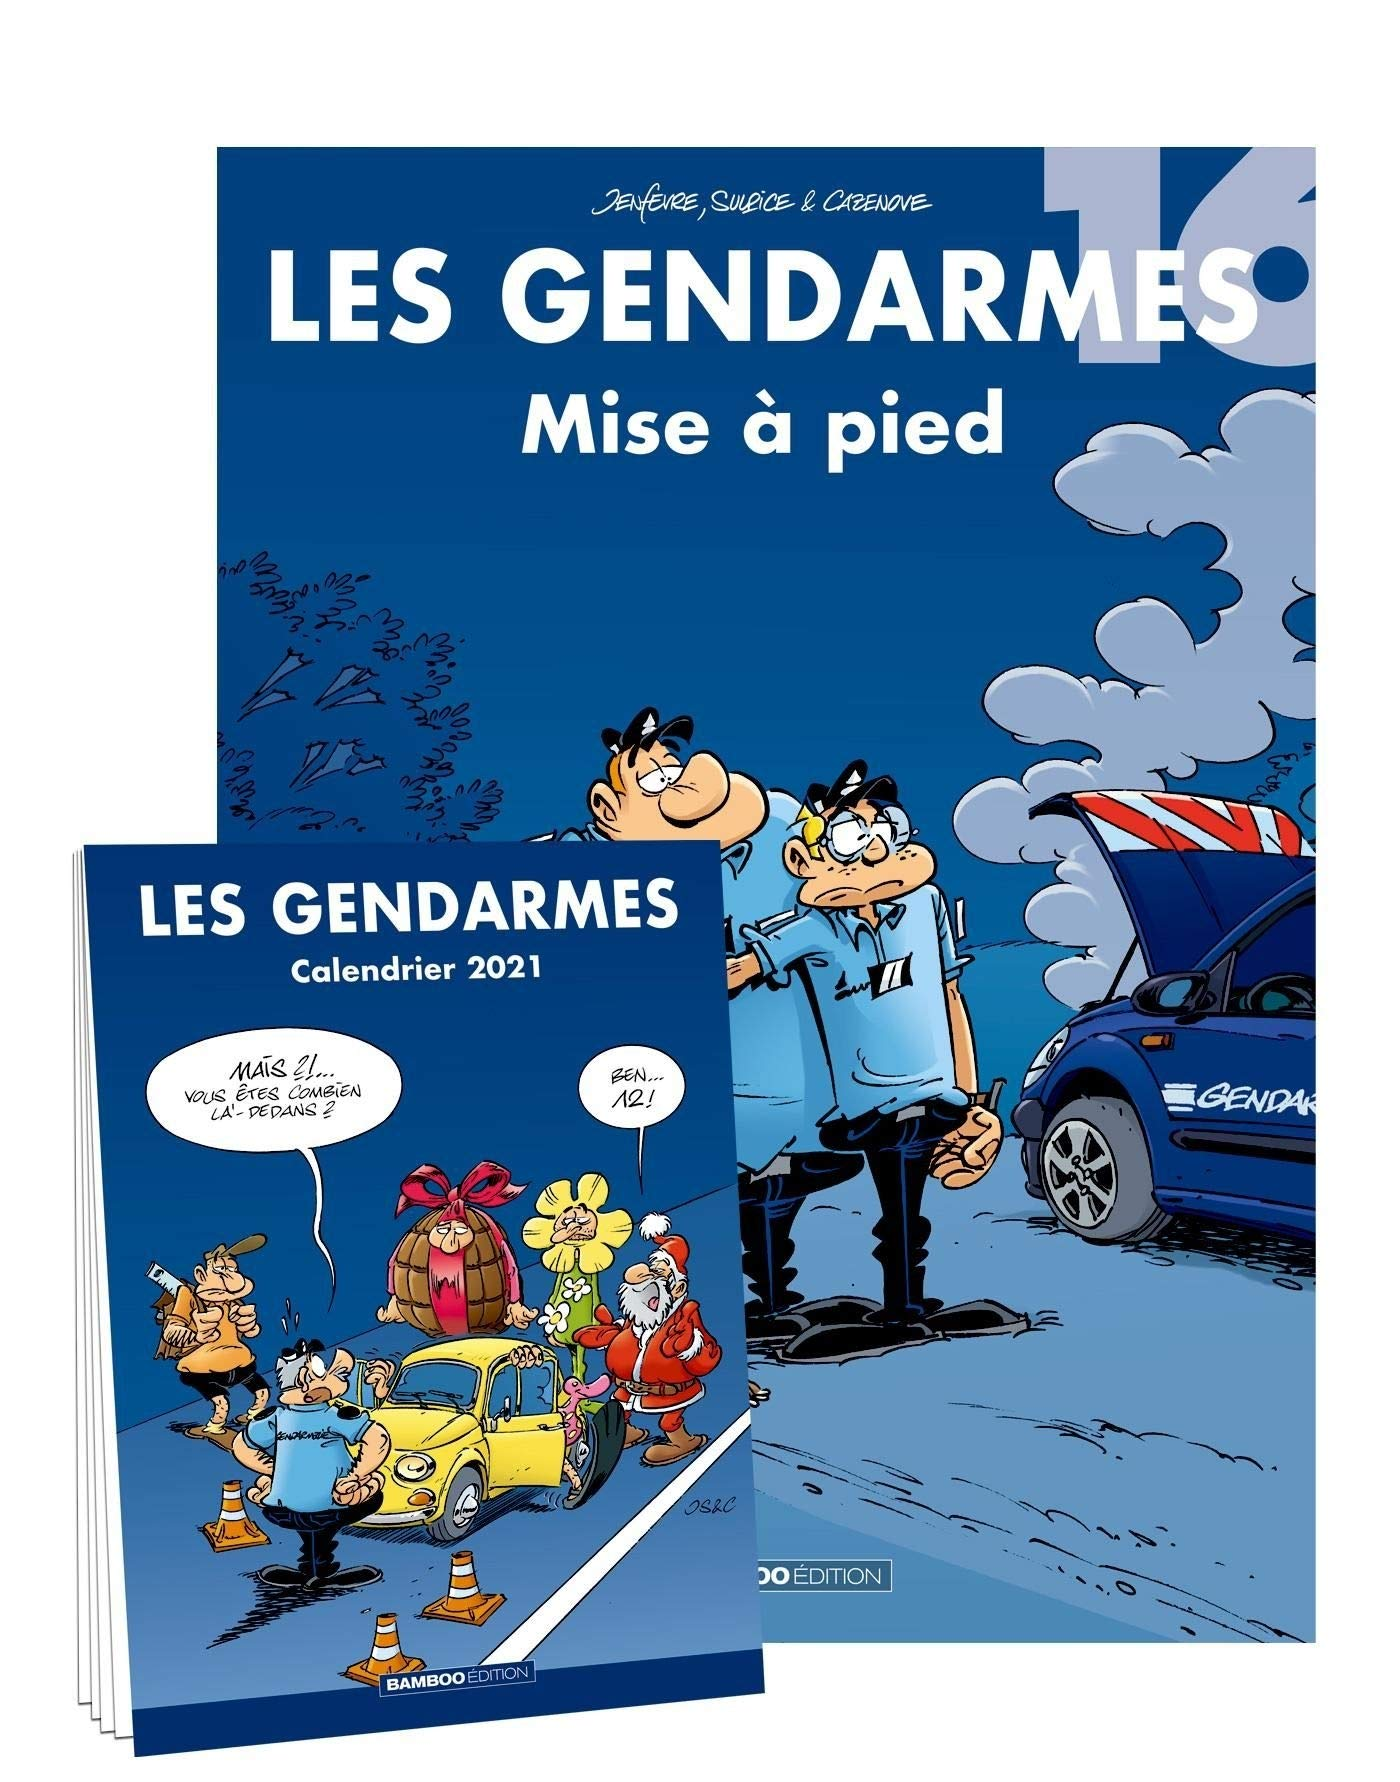 Les Gendarmes   tome 16 + calendrier 2021 offert (BAMBOO HUMOUR